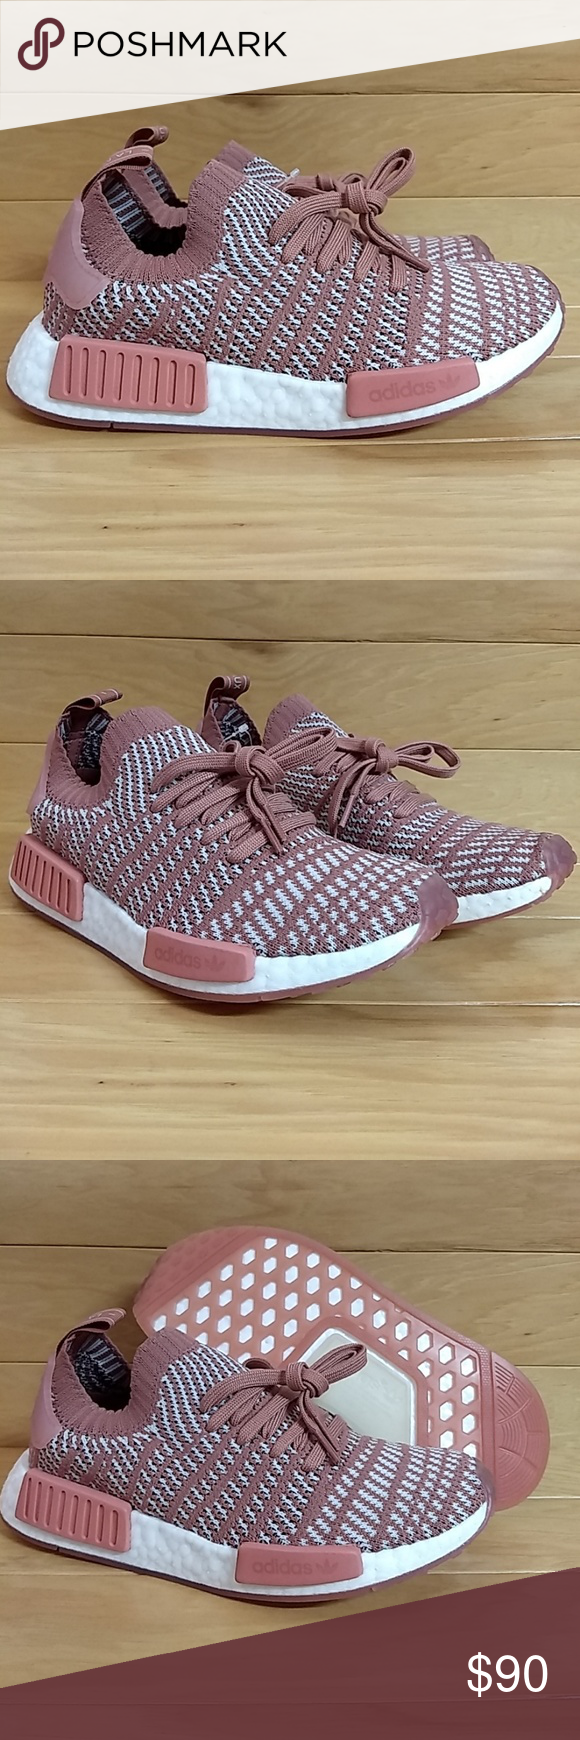 the best attitude 56e83 1ac6f Adidad NMD R1 Stlt Pk W Pink Purple White CQ2028 Brand New. With Box. Great  quality Adidas running casual sneakers at a great price.